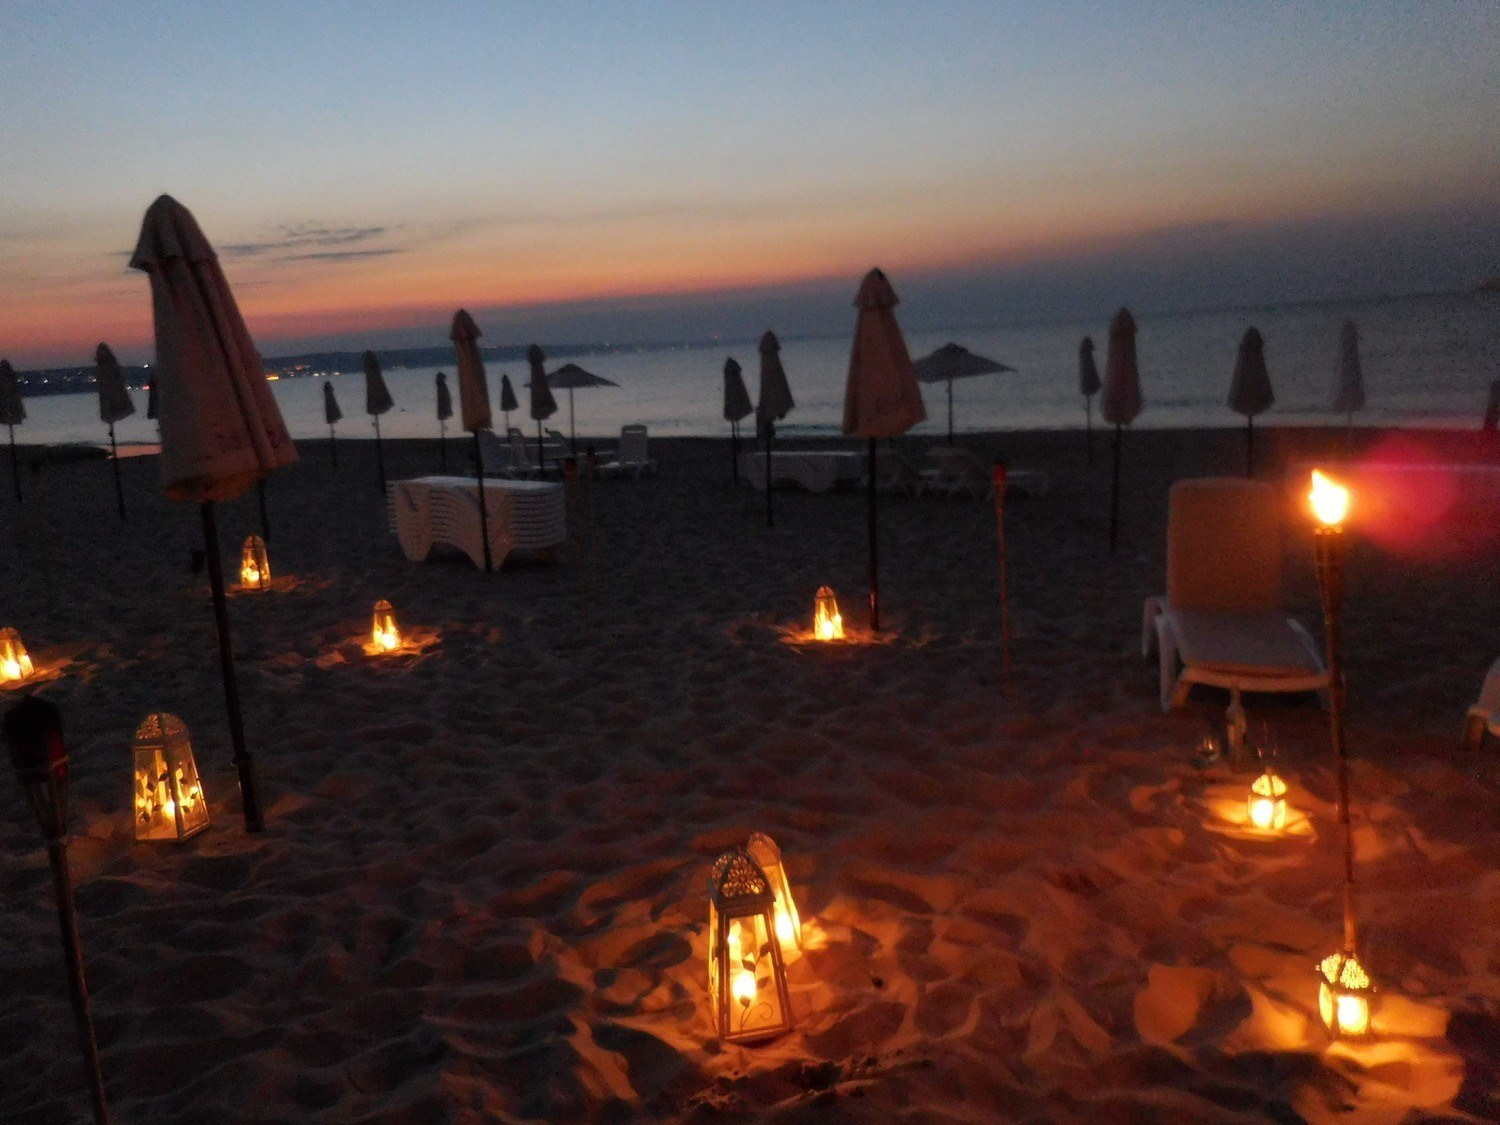 kranevo, amazing beach at night, bulgaria, europe